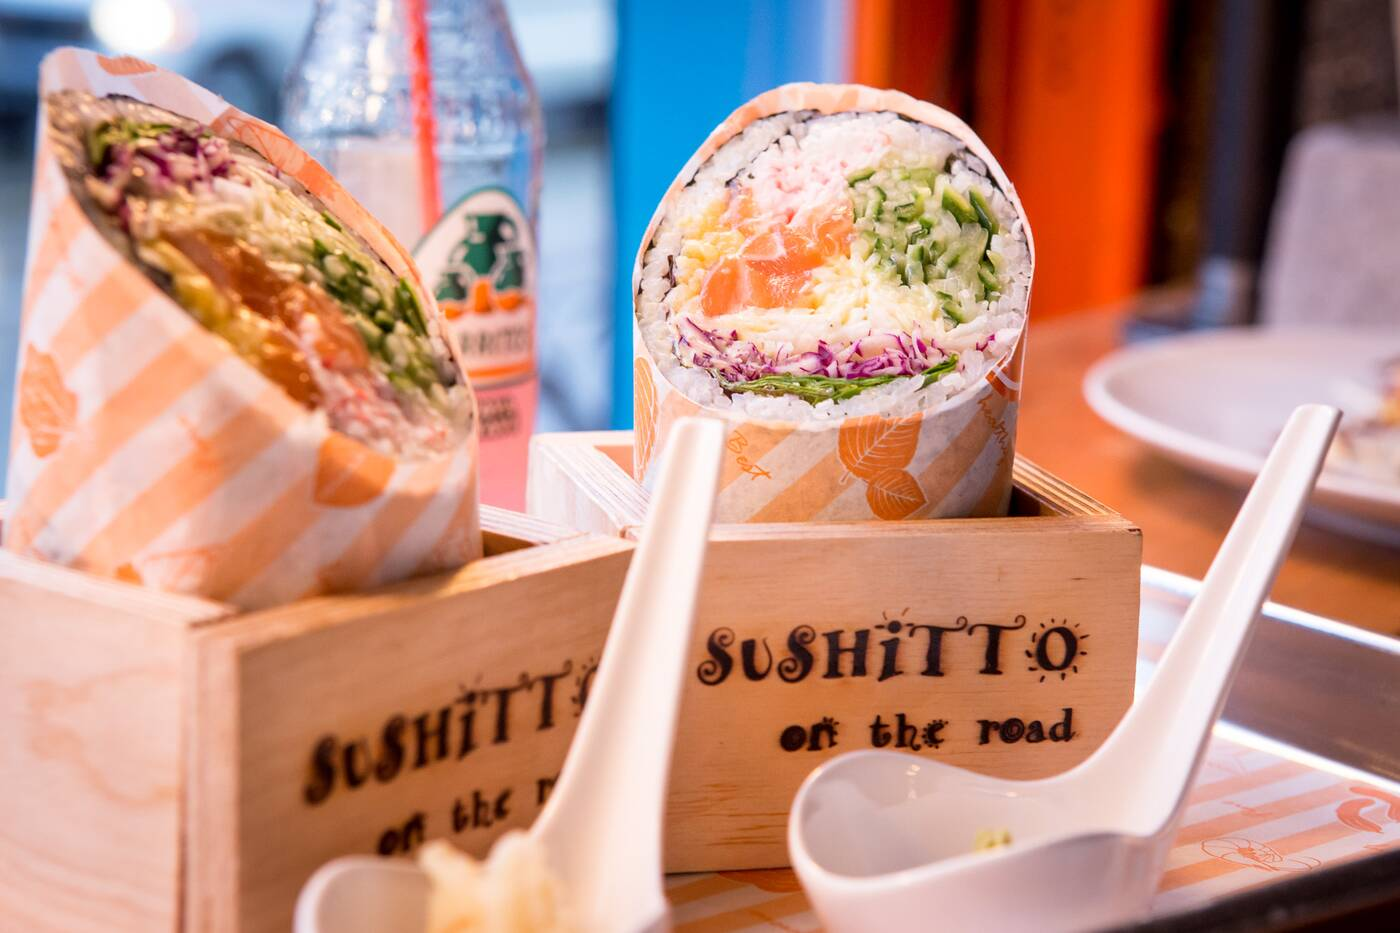 Sushitto Rollipub Toronto